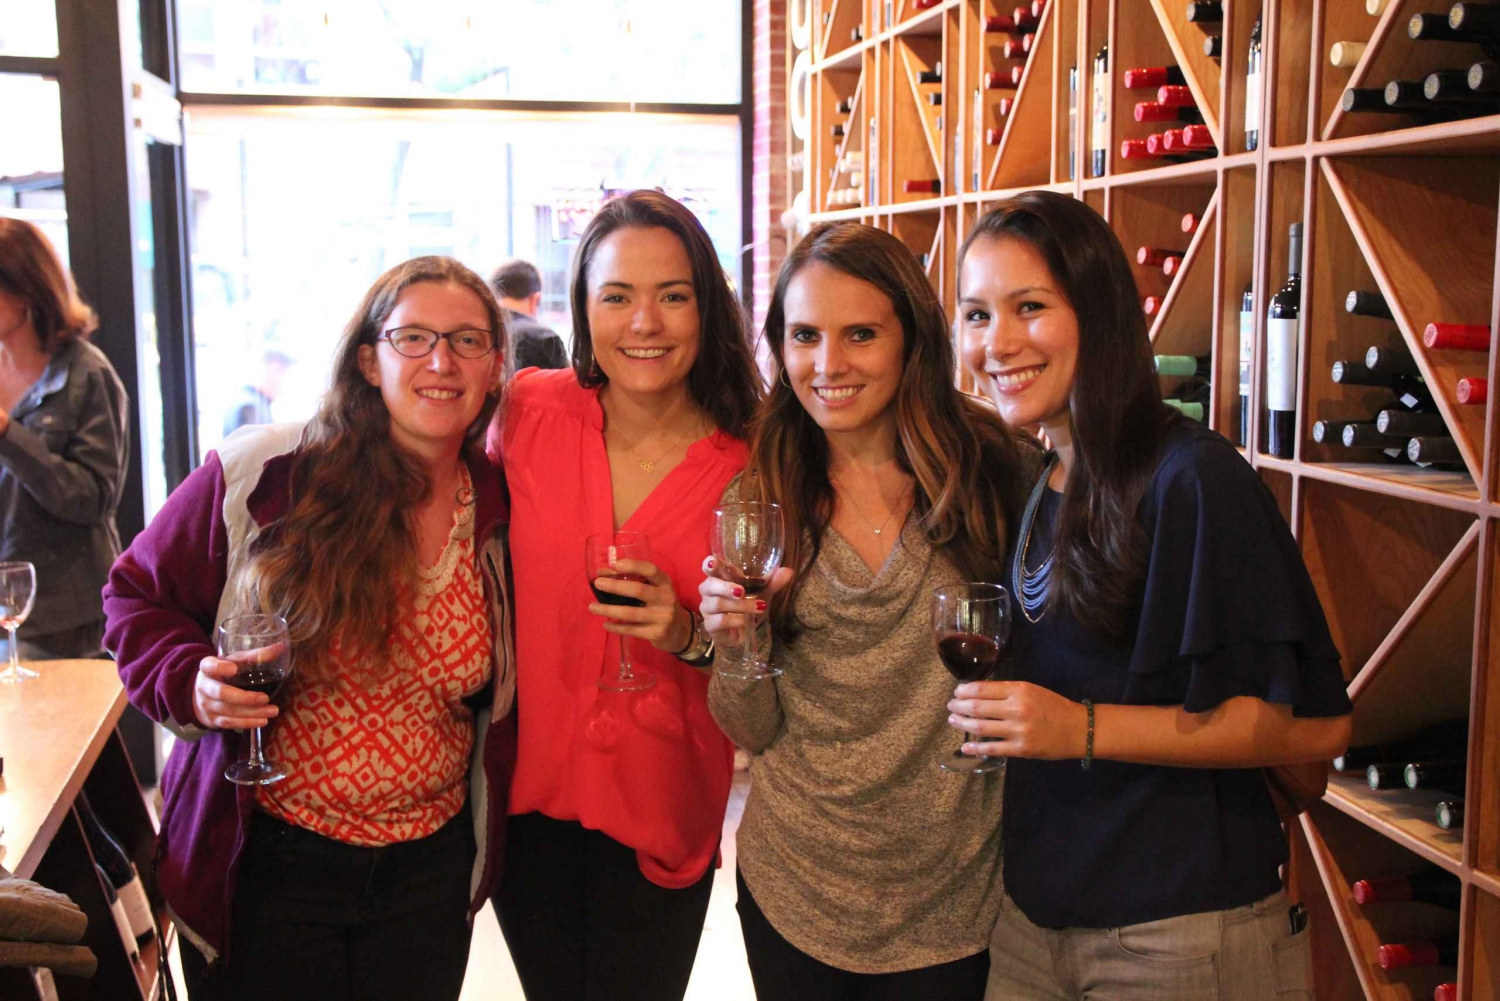 New West Village Wine Tasting and Walking Tour